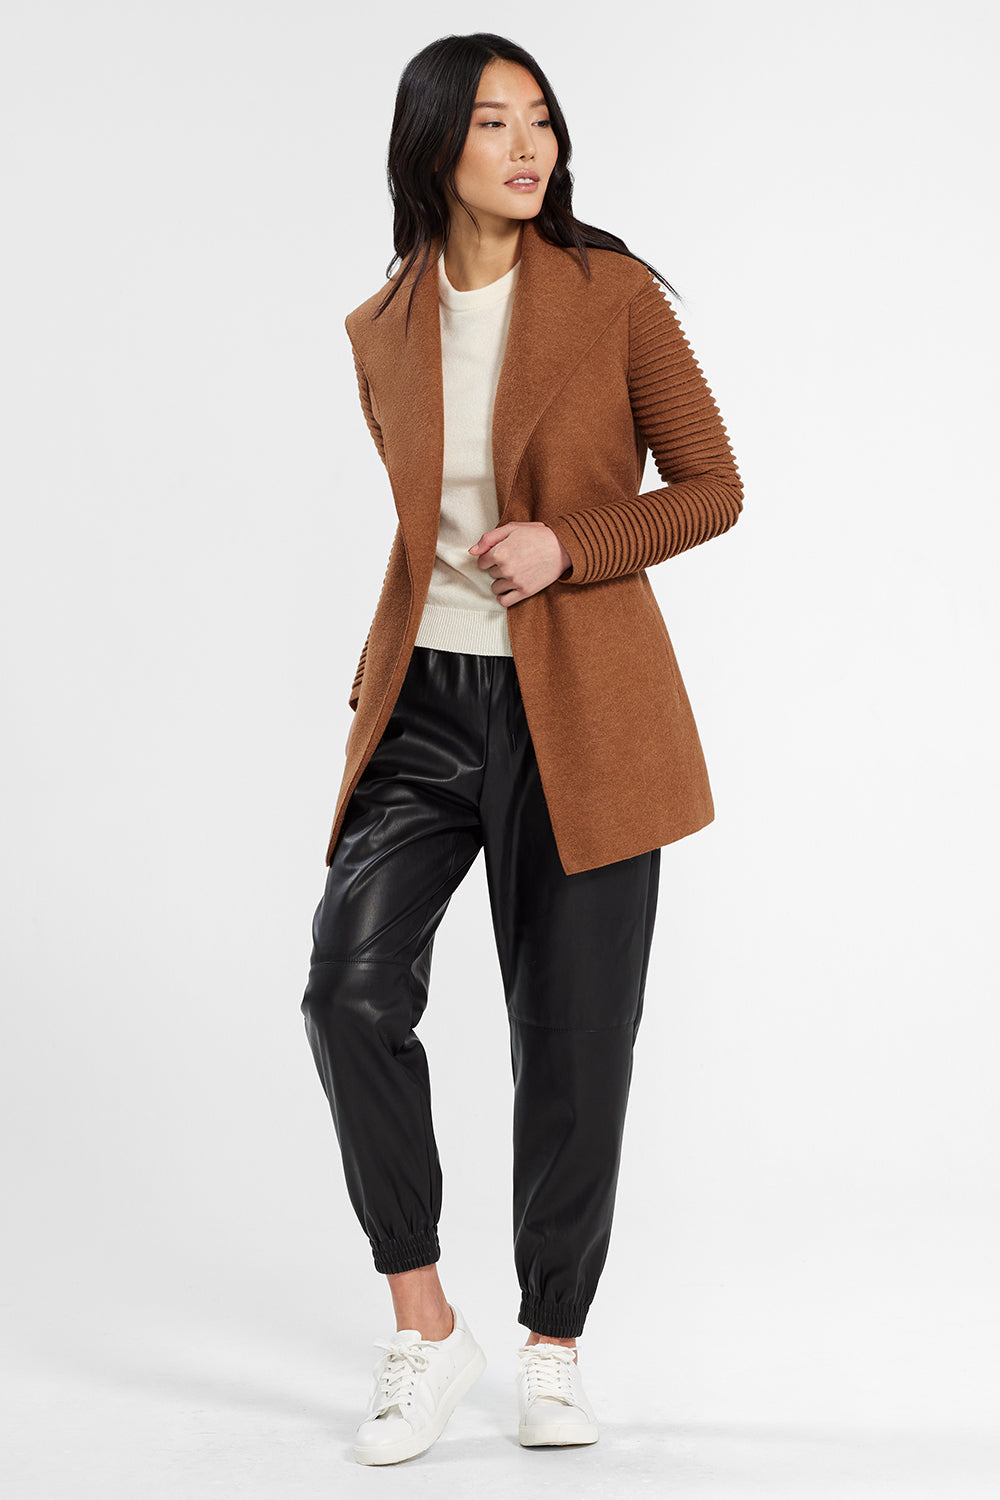 Sentaler Wrap Coat with Ribbed Sleeves featured in Superfine Alpaca and available in Dark Camel. Seen open.